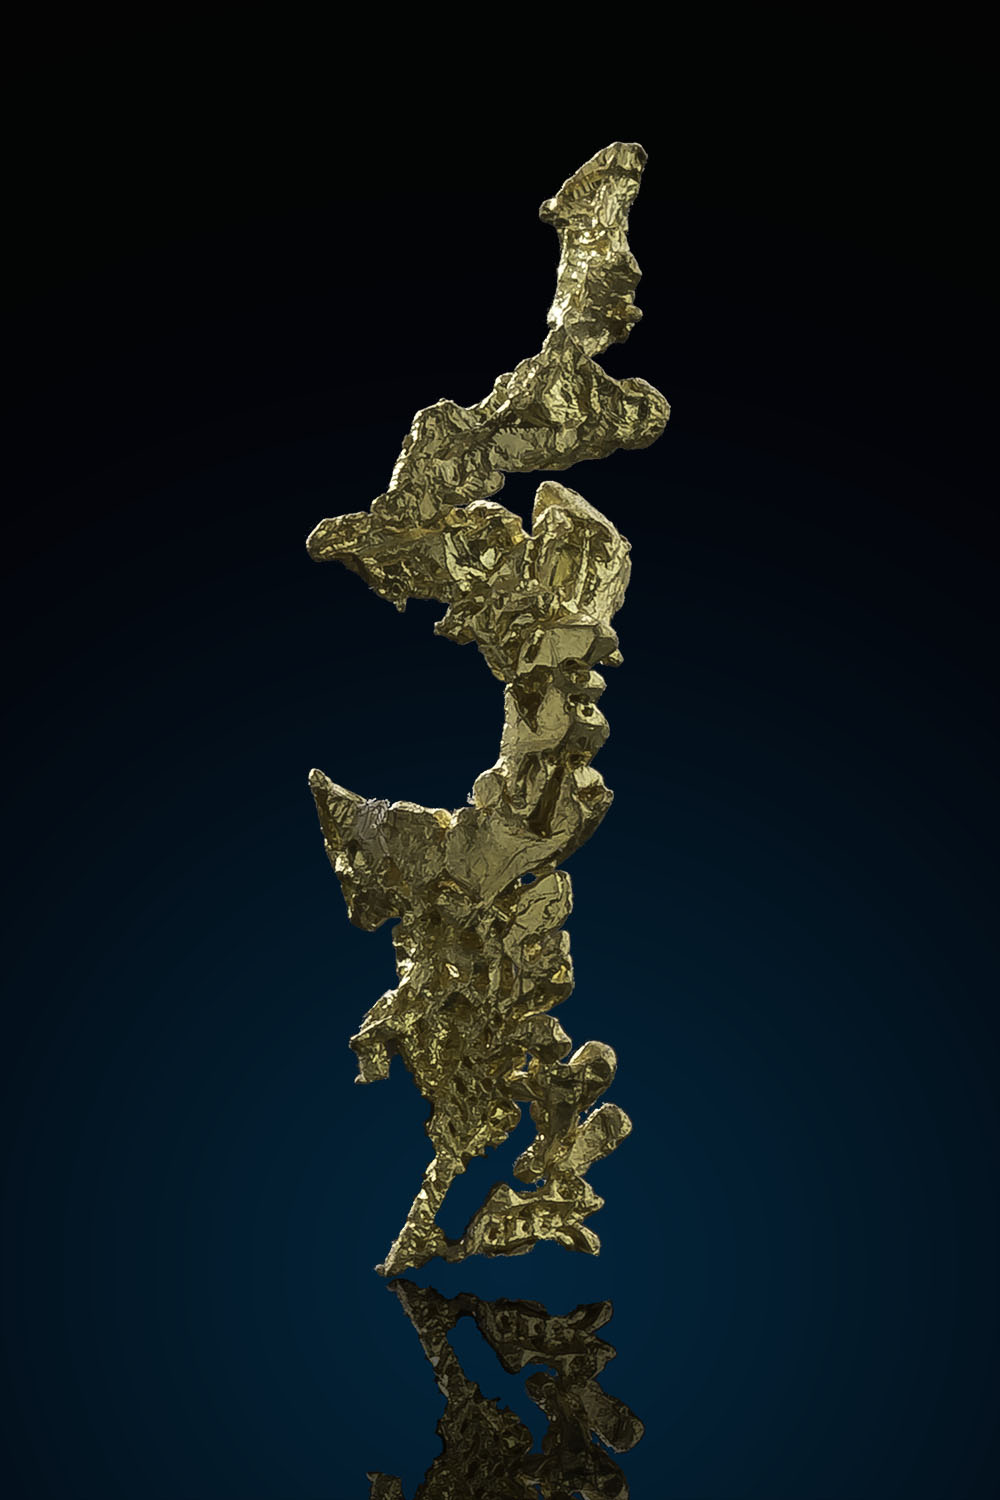 Long and Well Crystalized Gold Specimen - Eagles Nest